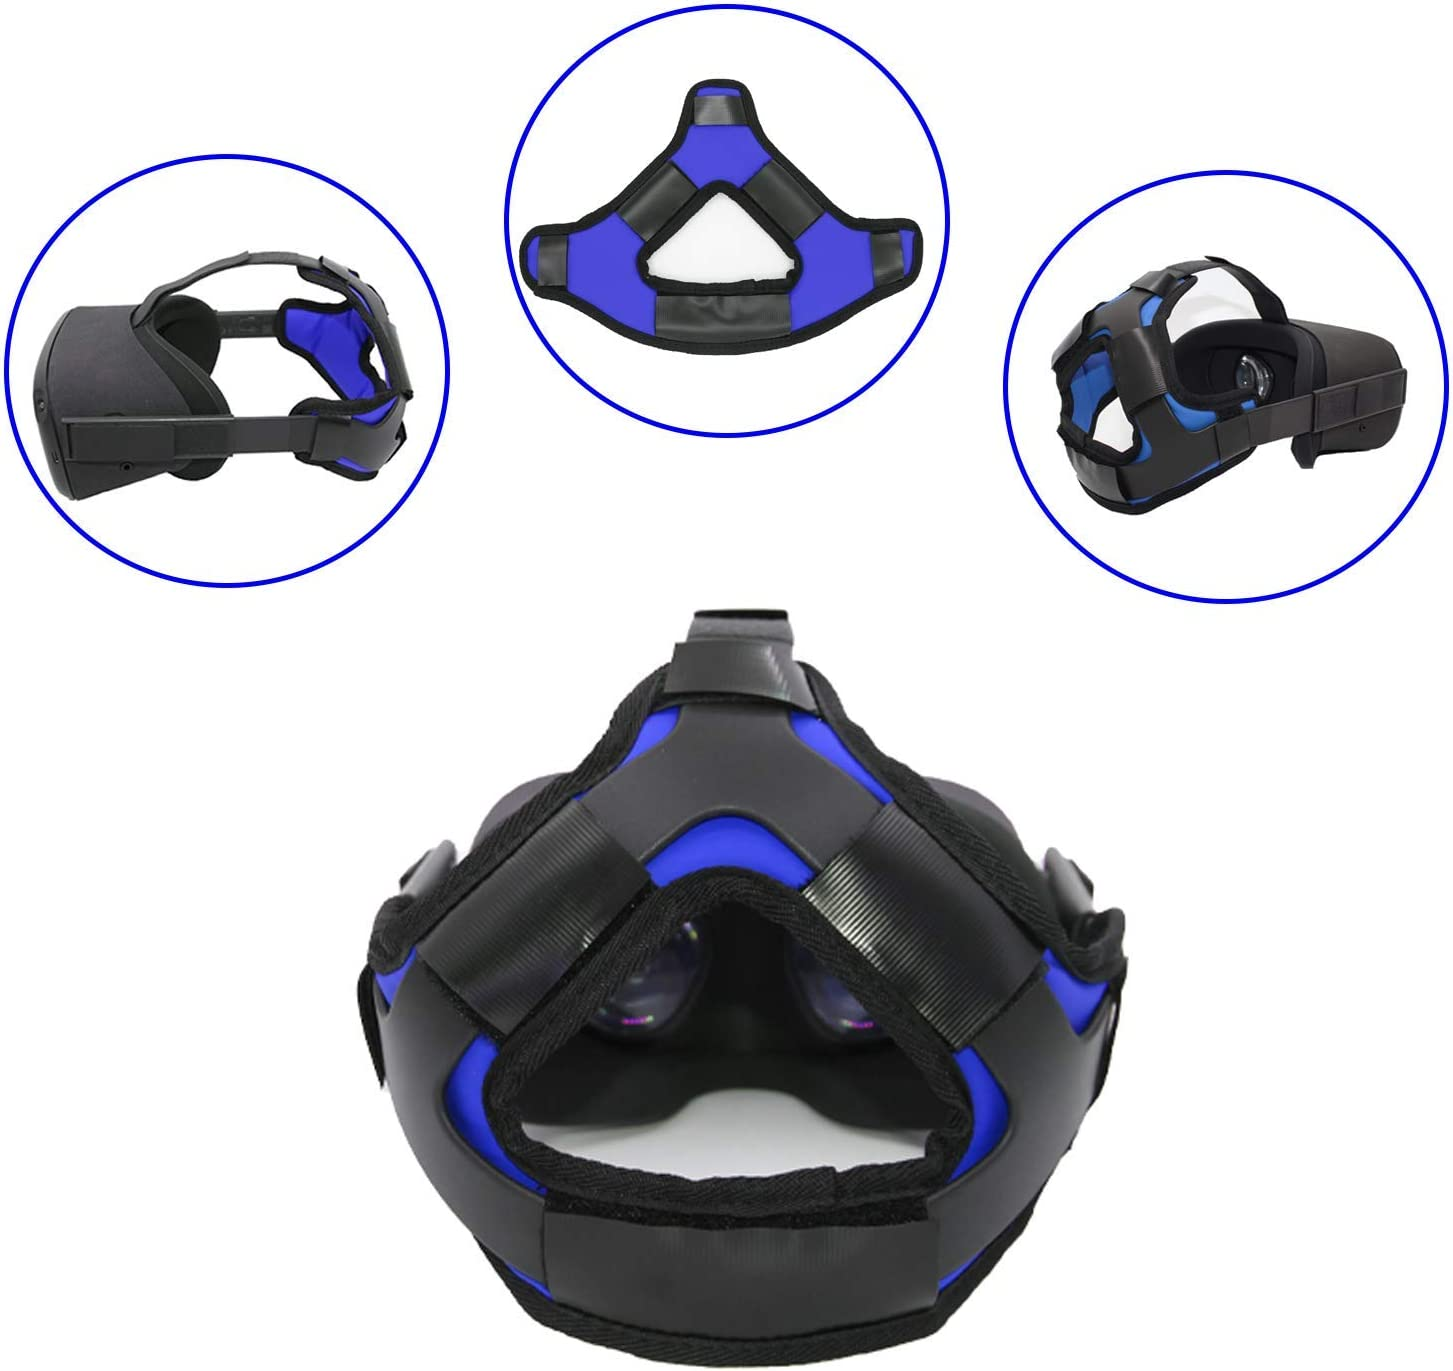 Head Strap Pad & Headband Gravity Pressure Reducing Head Pad Cushion for Oculus Quest & Oculus Go Headset Accessories with Comfortable PU Leather Surface & Soft Foam Pad (Blue, Oculus Quest)